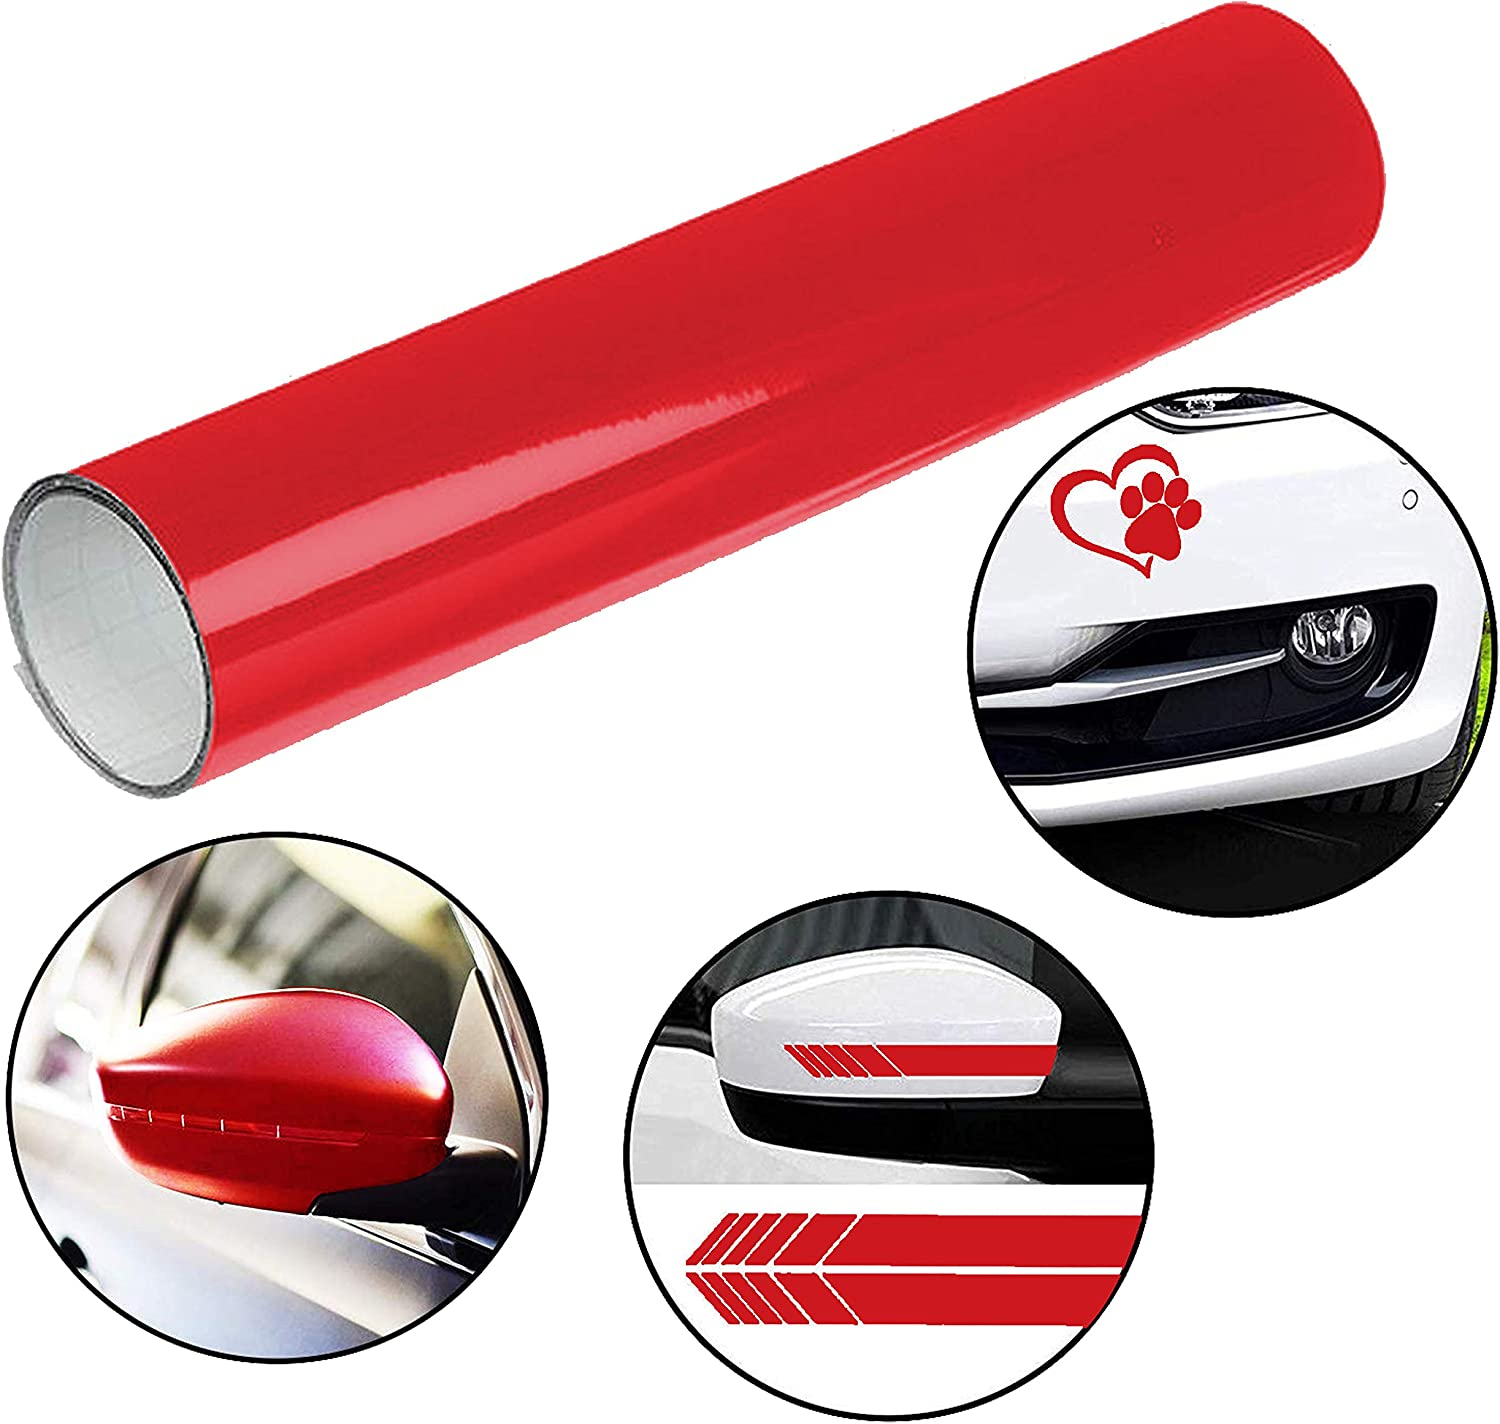 Craft Projects Glossy Sticky Back Vinyl Roll Stickers /& Decals Home Decor Hobbies Red Vinyl Roll 30cm x 3m Roll of Self-Adhesive Vinyl Roll for Cutting Plotters Scrapbook